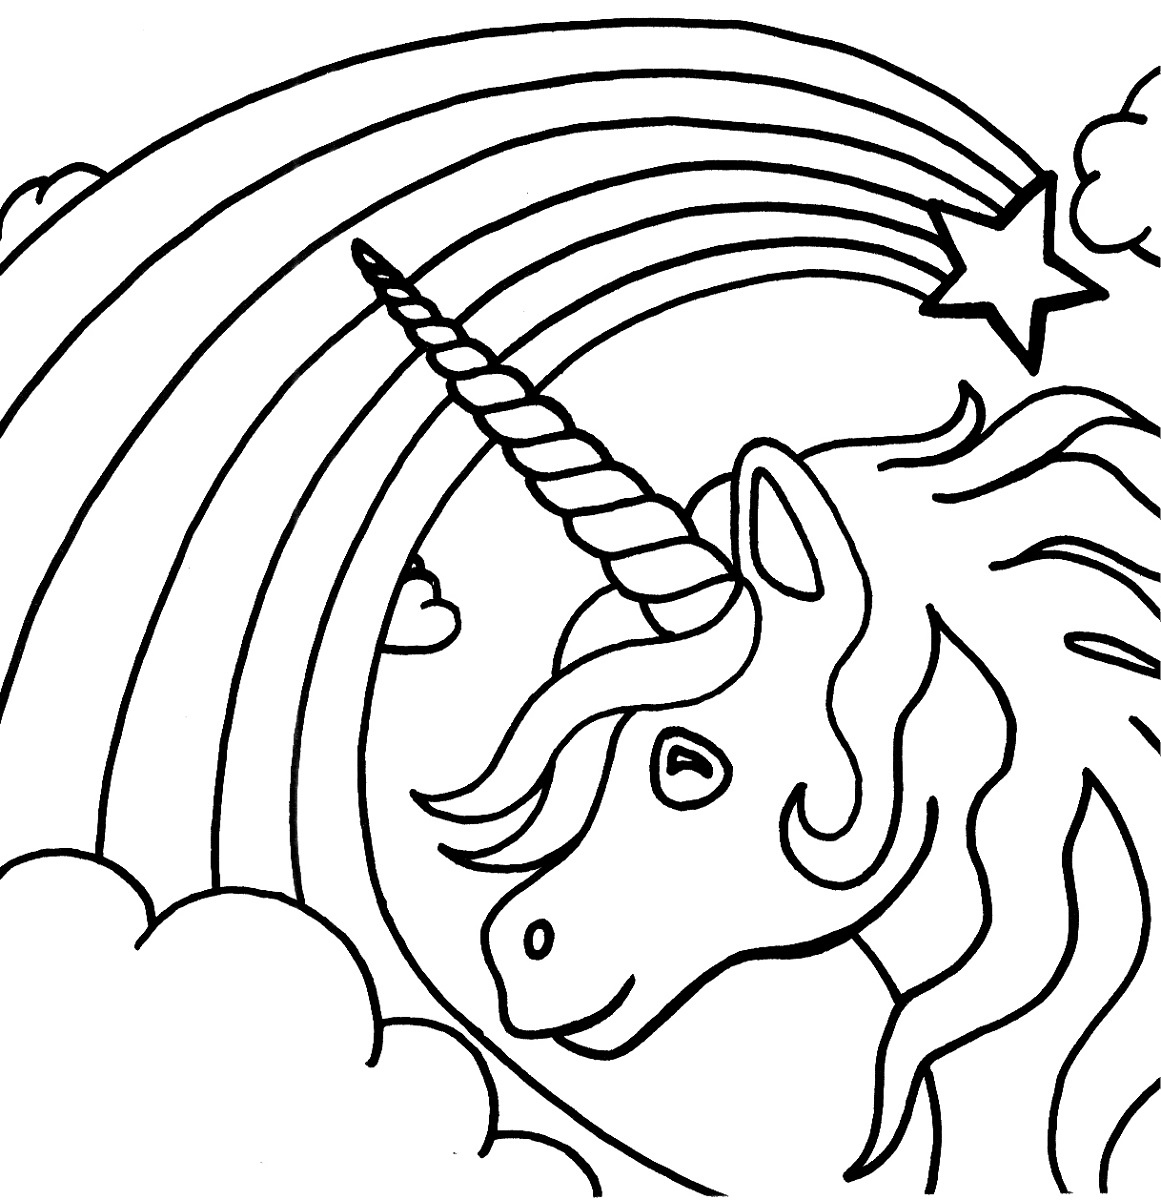 unicorn coloring unicorn drawing unicorn drawing pages at getdrawings free download unicorn drawing coloring unicorn